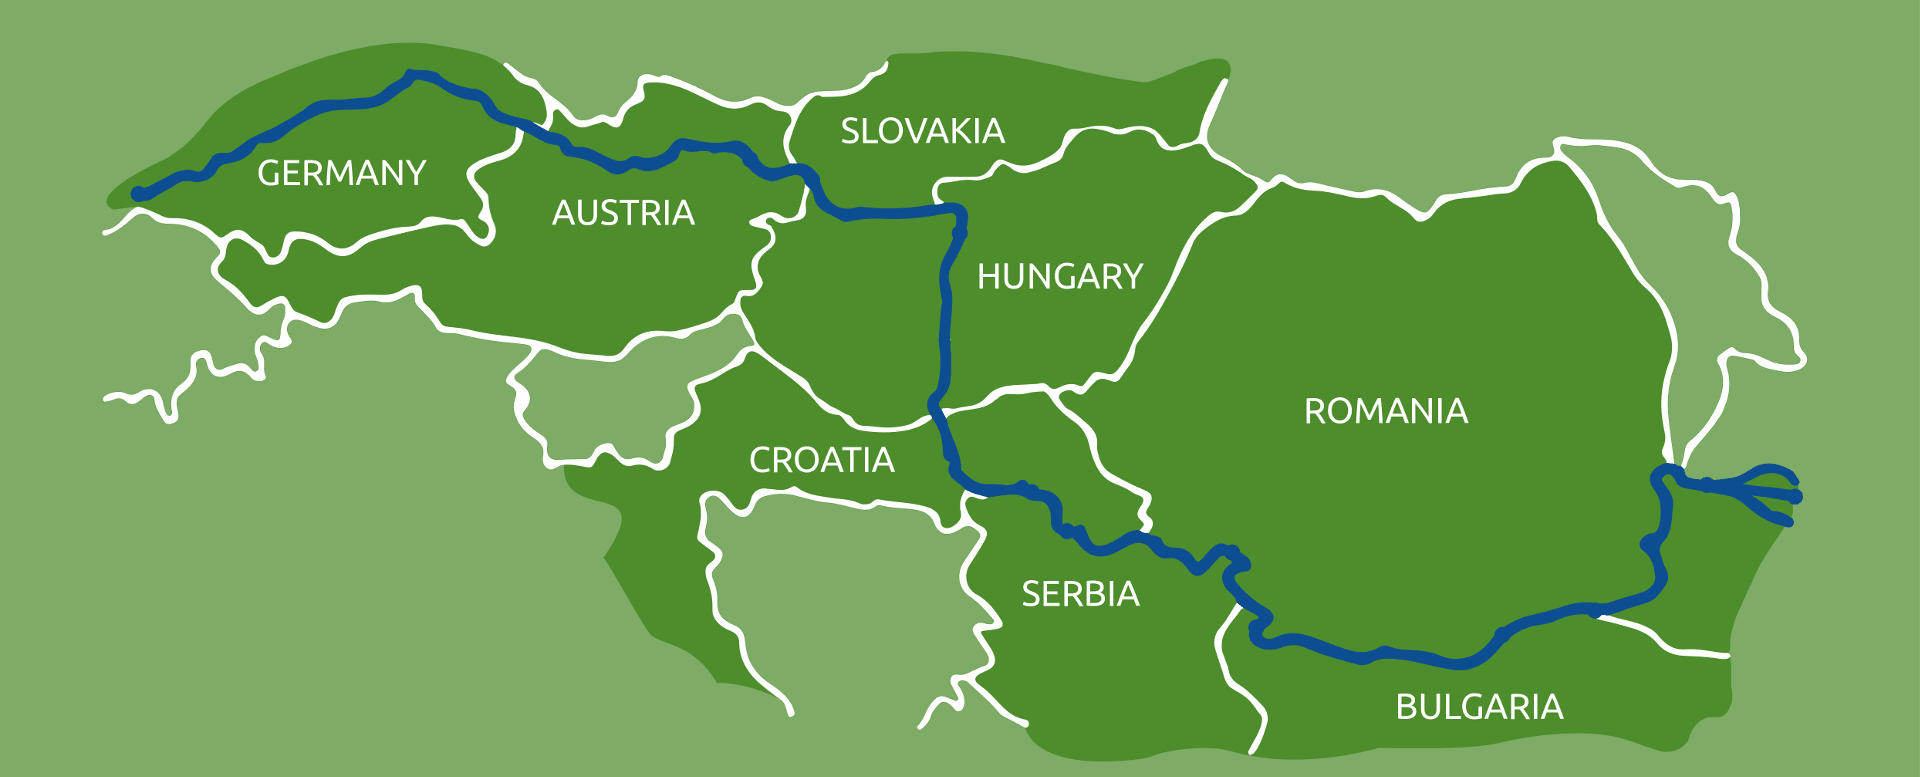 The Danube Region